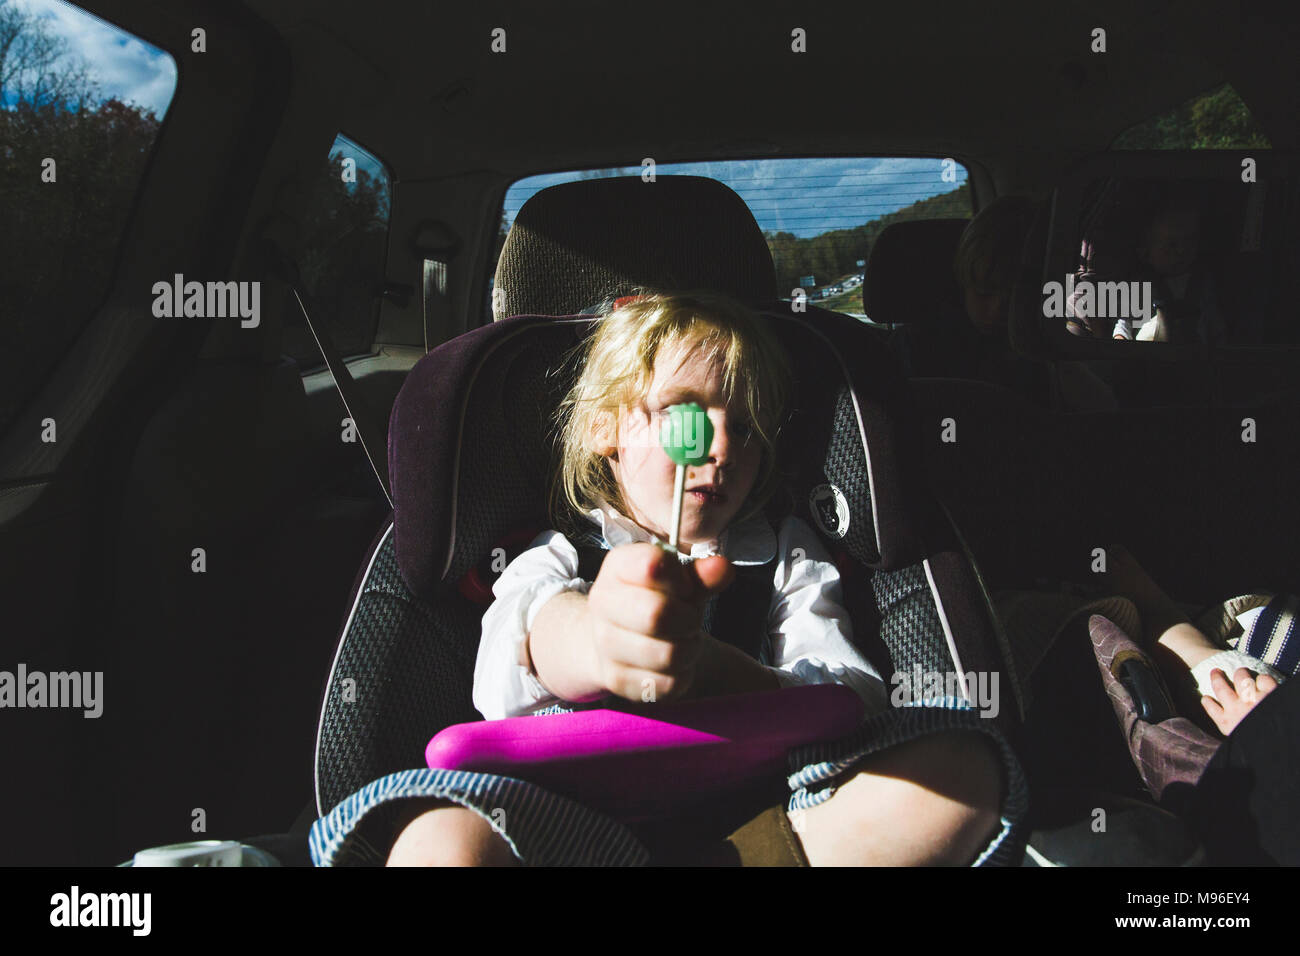 Girl with green lollipop sitting in car seat - Stock Image